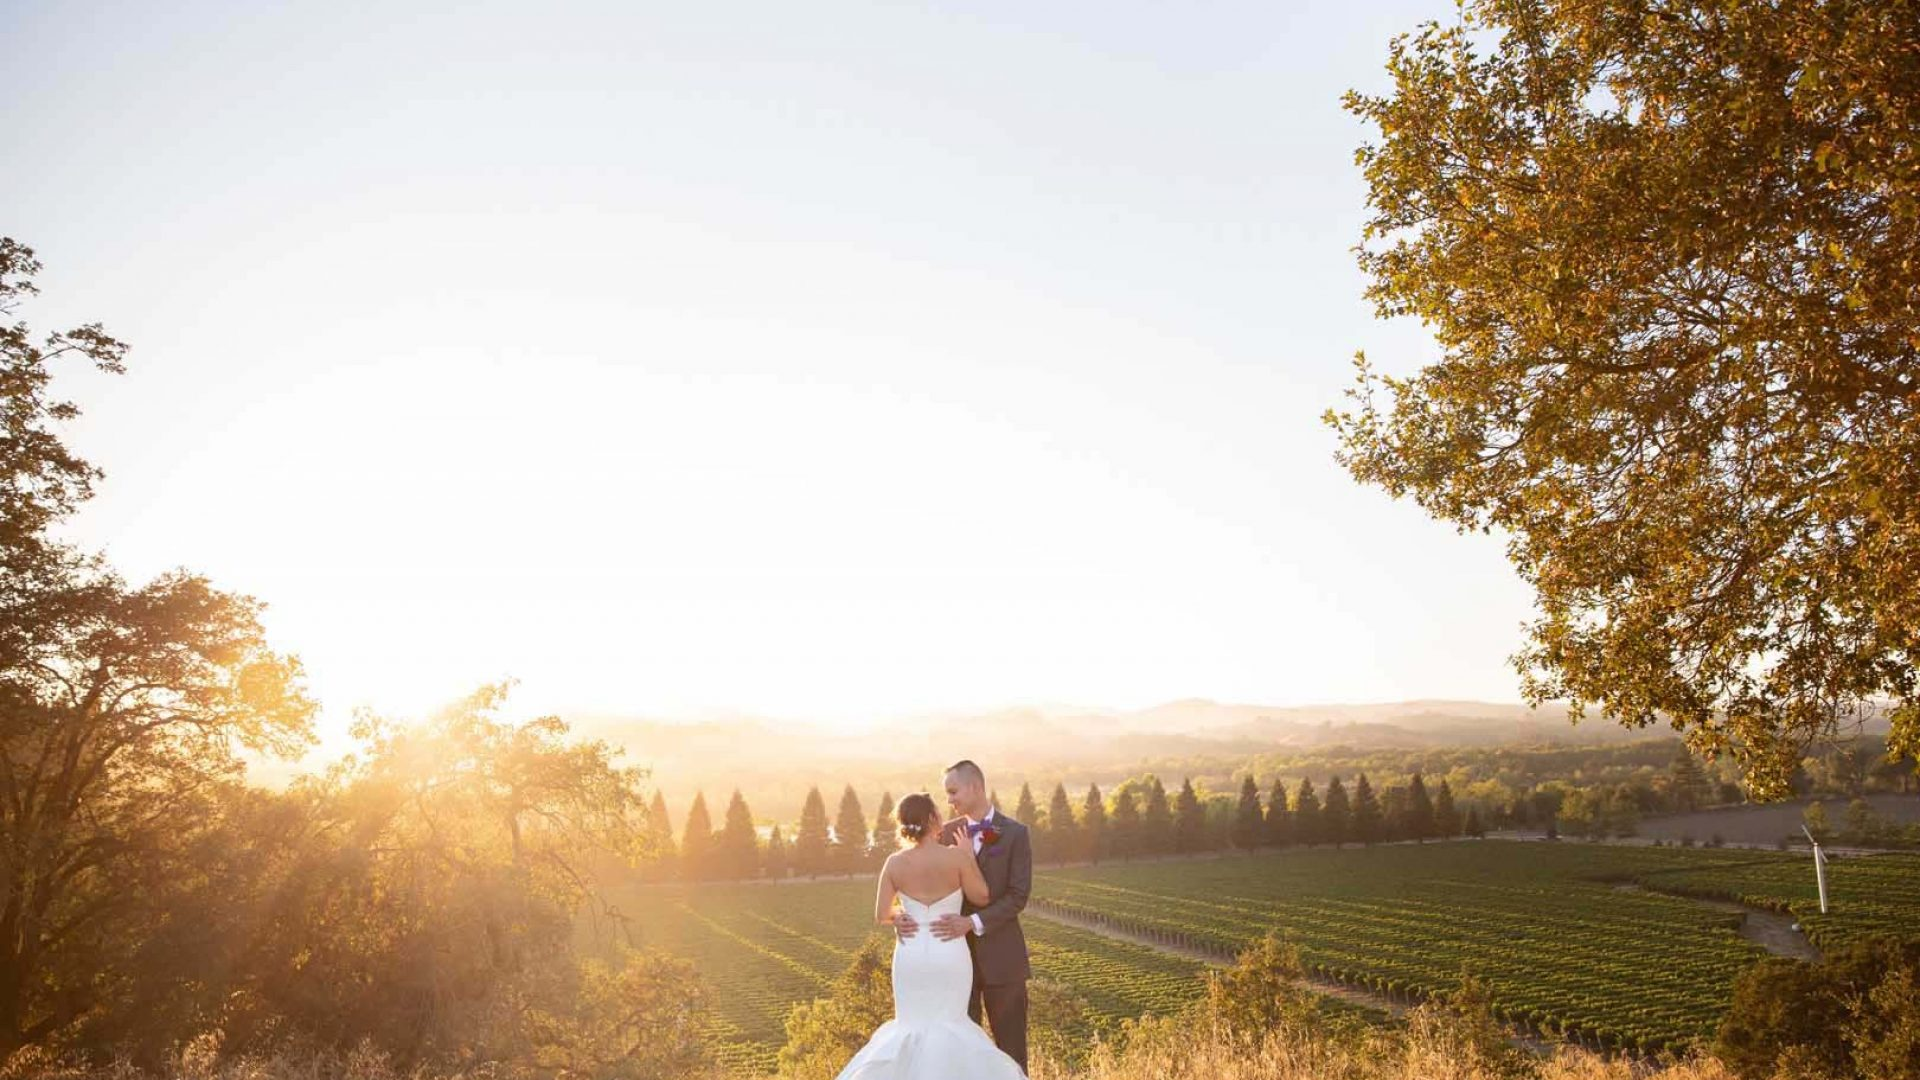 View More: http://ginapetersenphotography.pass.us/stephanieandryanaremarried